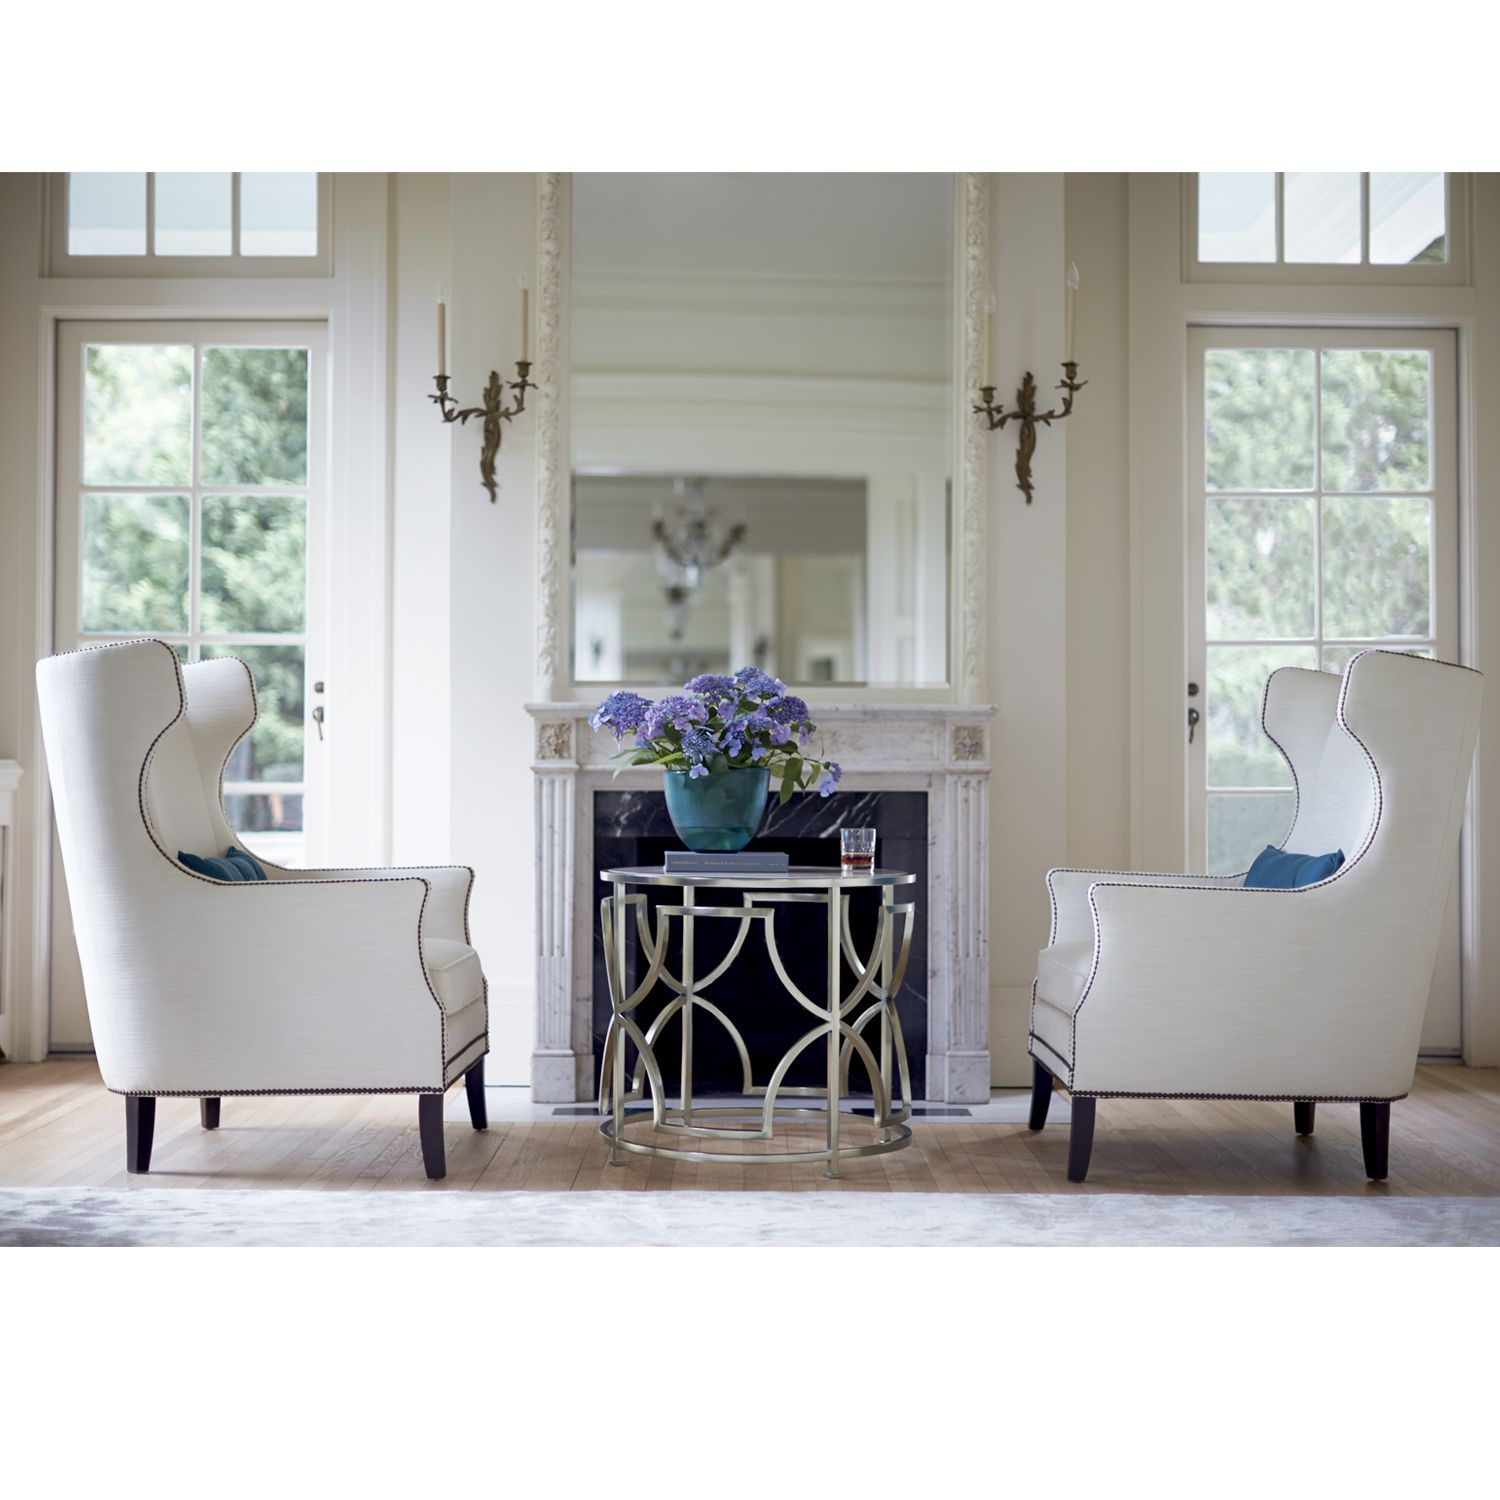 chair contemporary by bernhardt interiors furniture company arm product